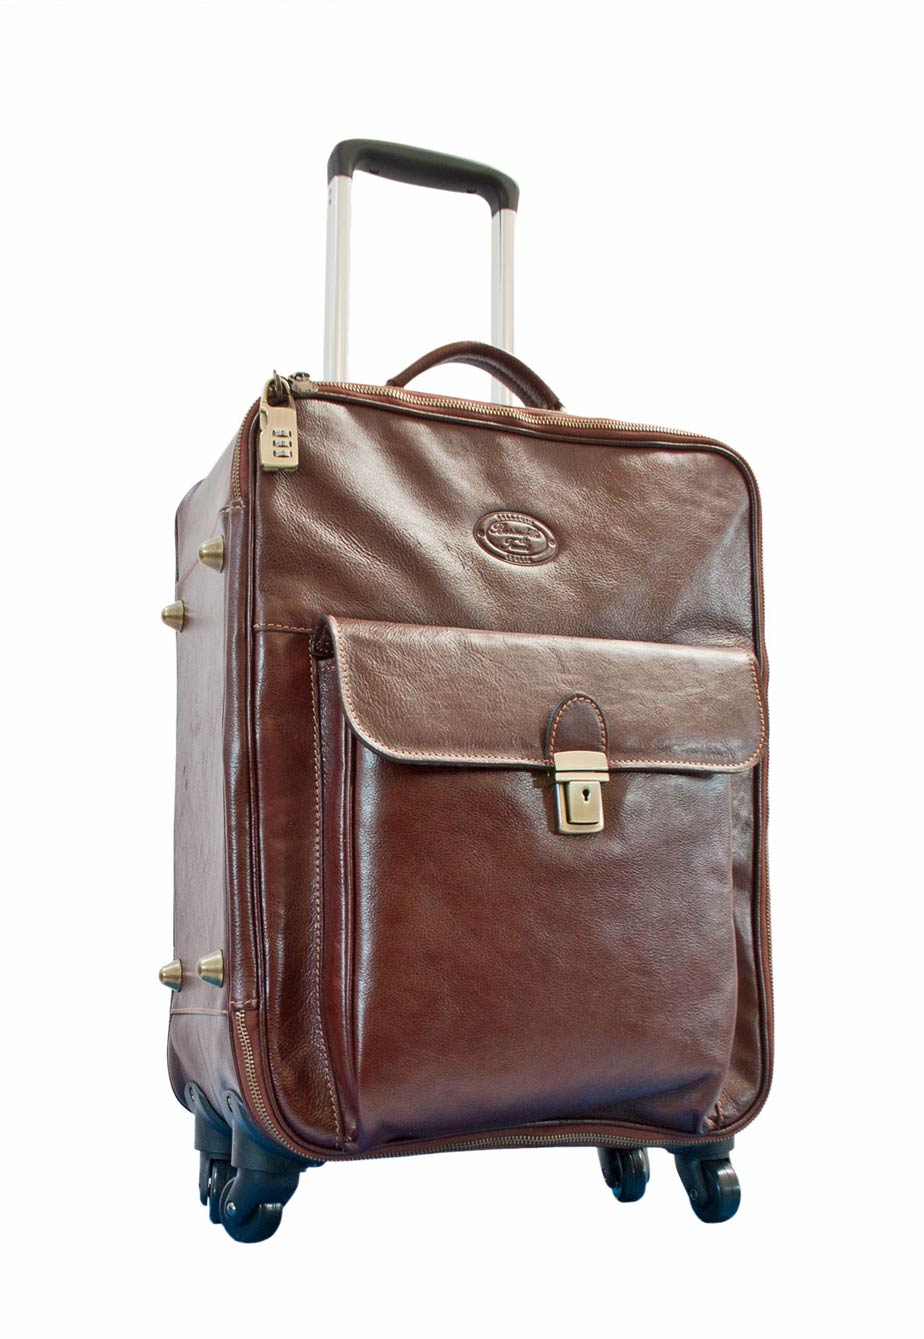 Trolley bag brown leather